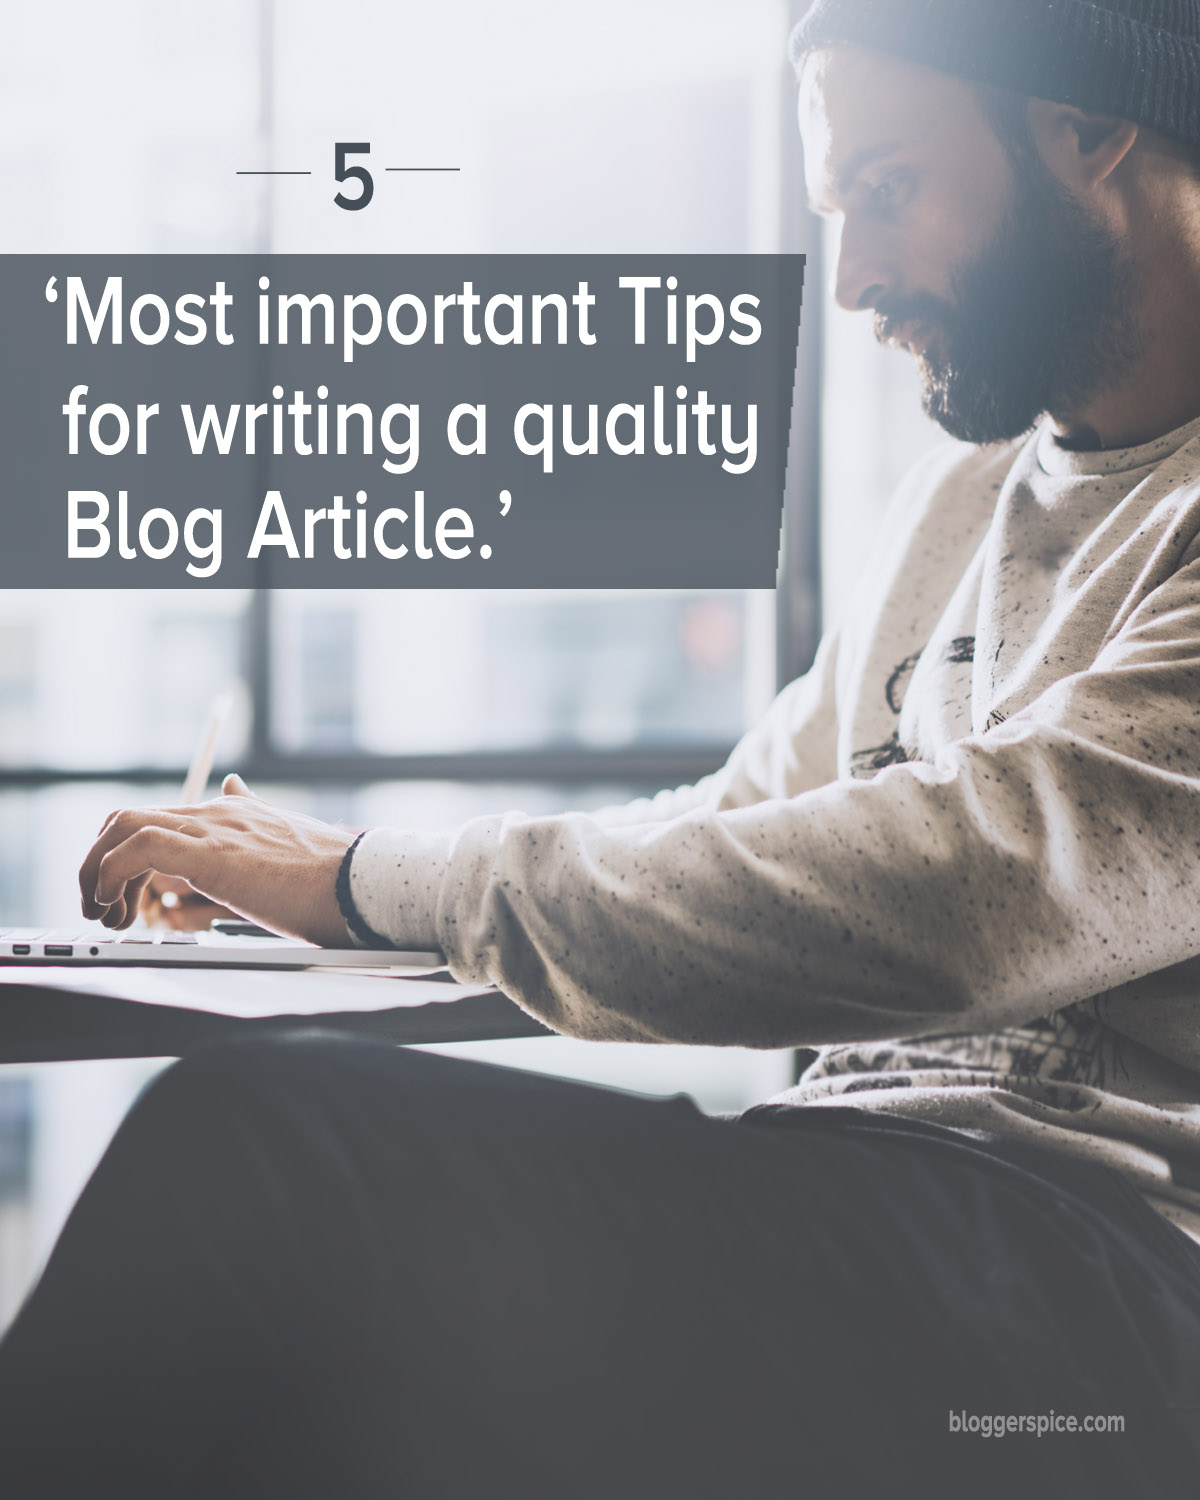 How to Write Great Blog Content?